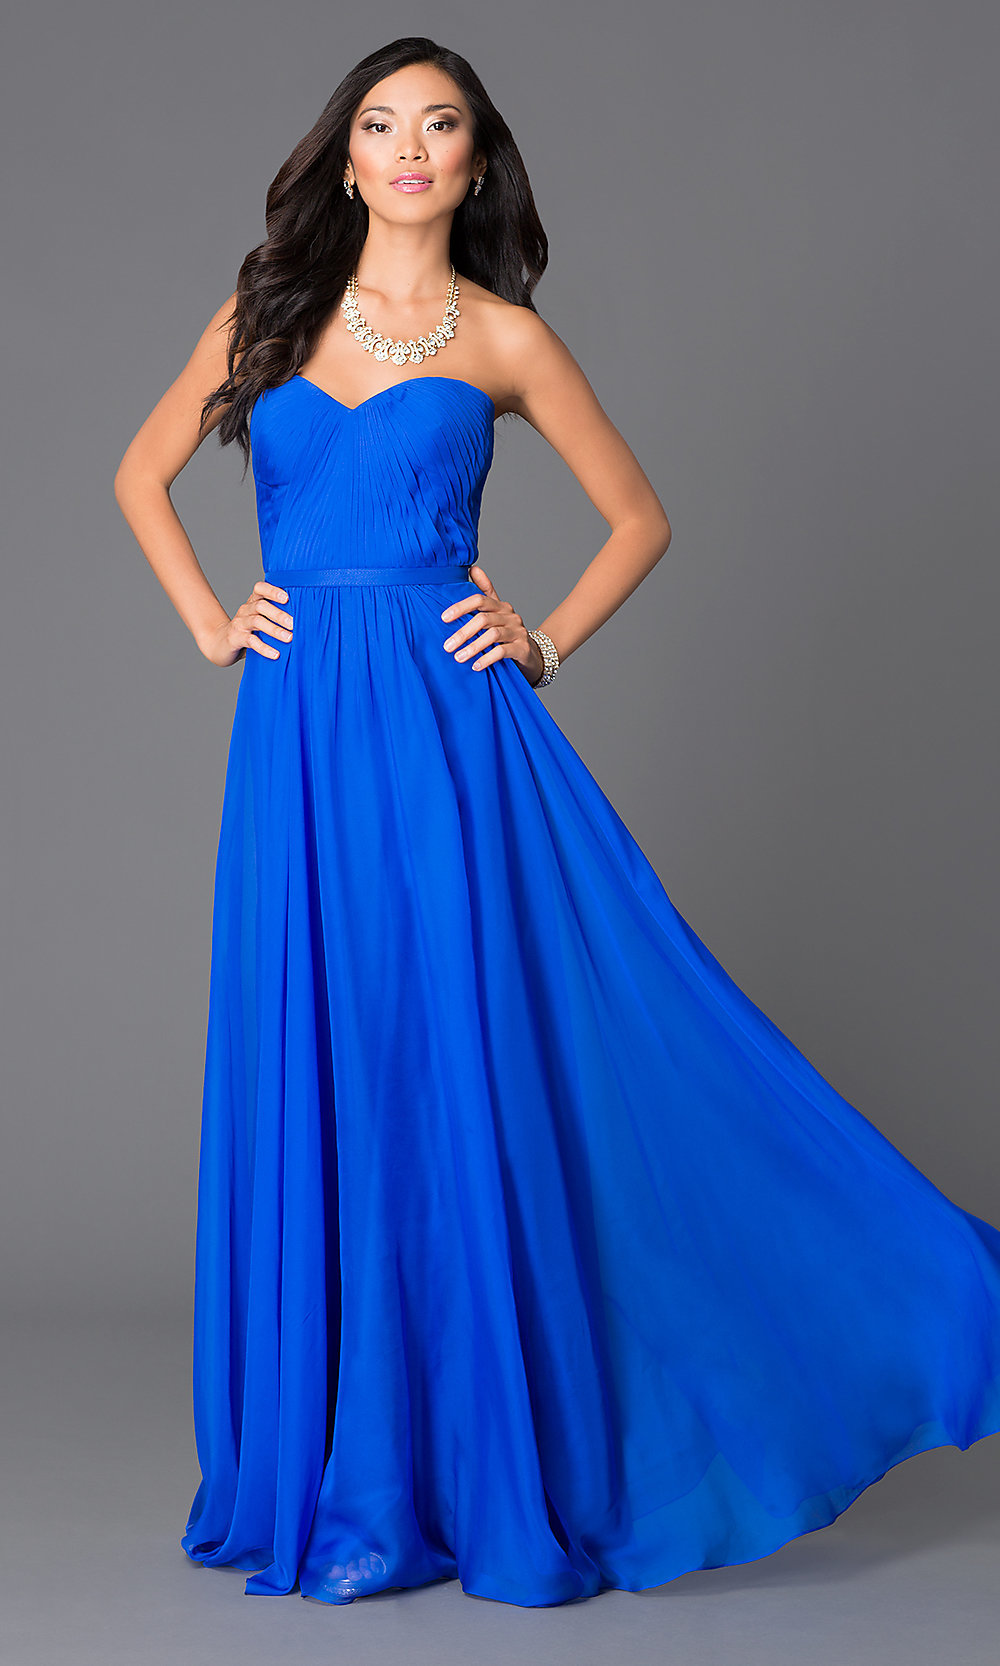 Abbie Vonn Blue Long Chiffon Prom Dress - PromGirl